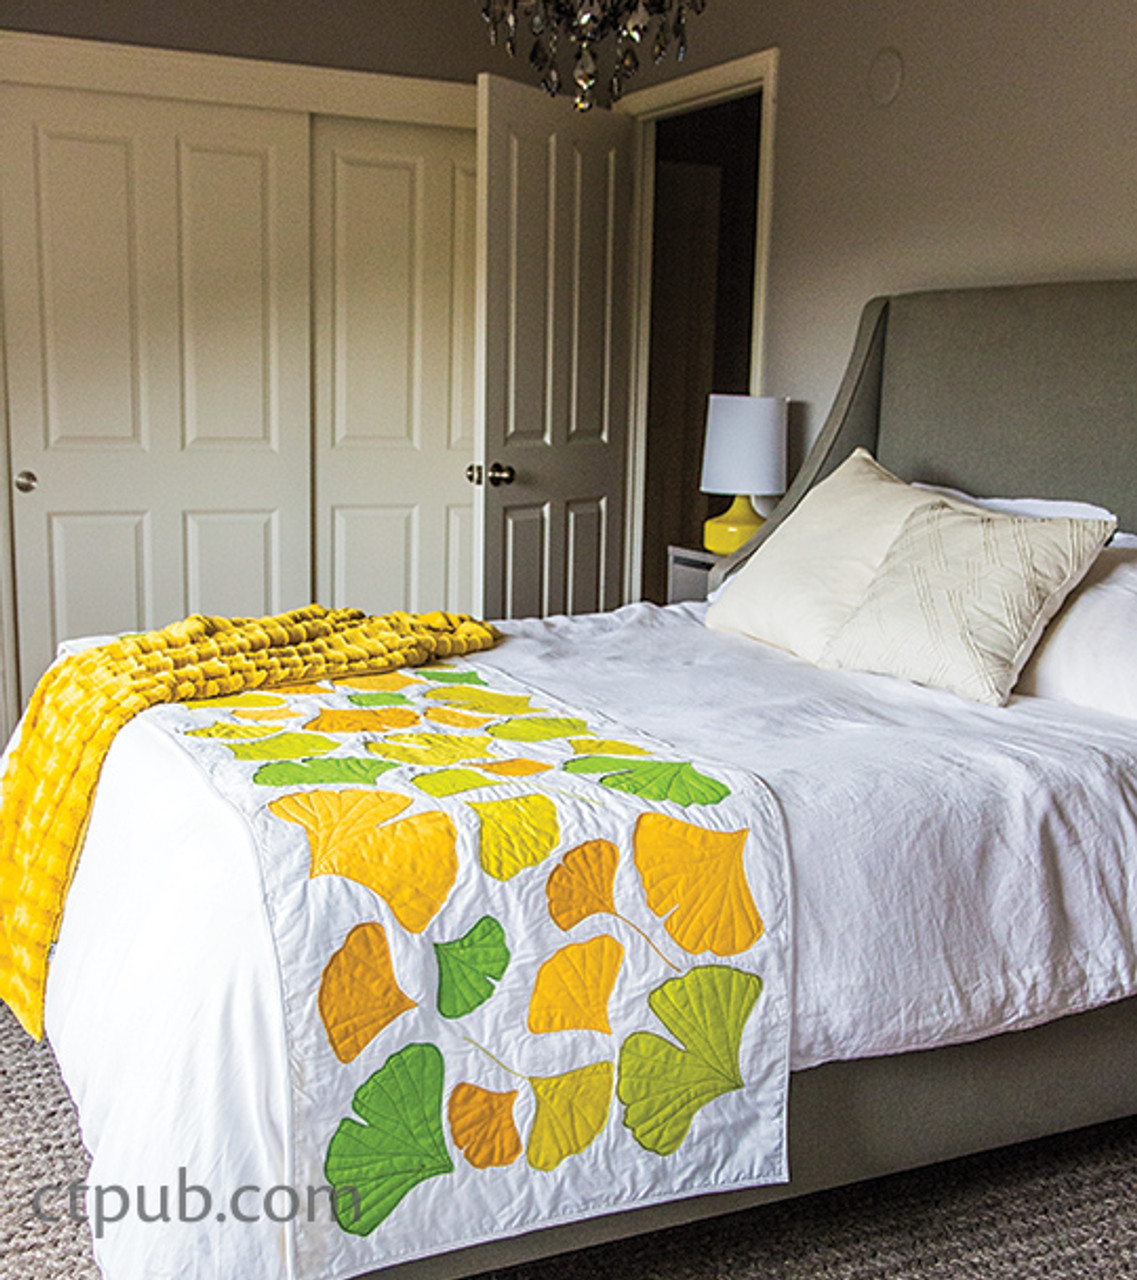 Free Project Gingko Bed Runner C T Publishing